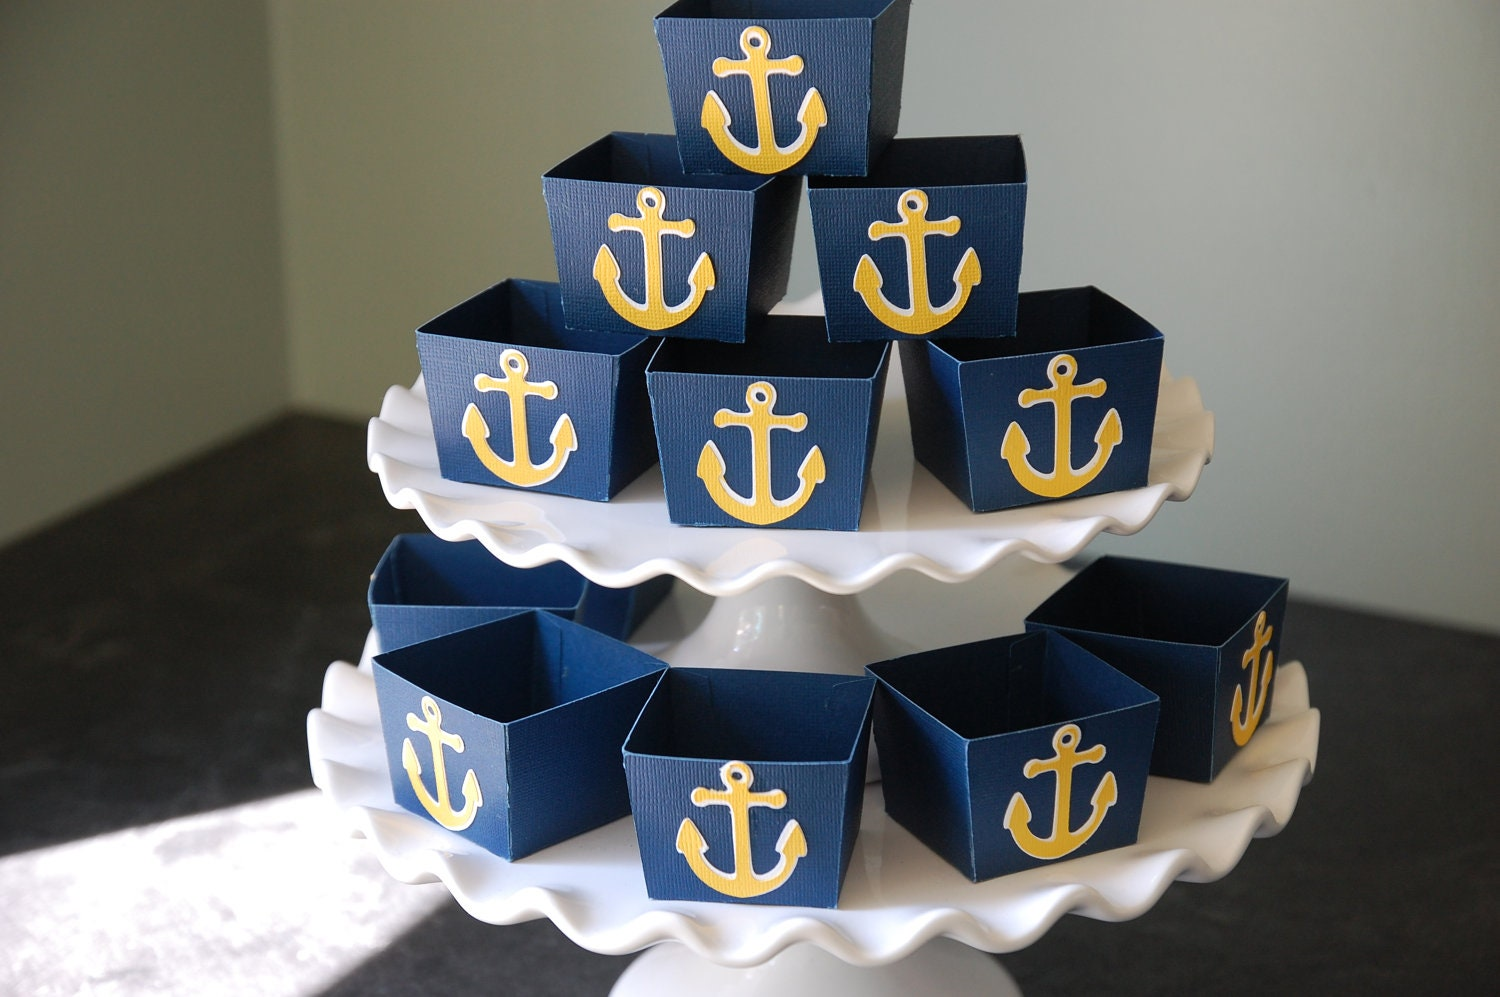 party nautical favors pinterest supplies sailboat printables themes decorating ahoy free baby plus ideas theme sailor with together decorations home decor shower